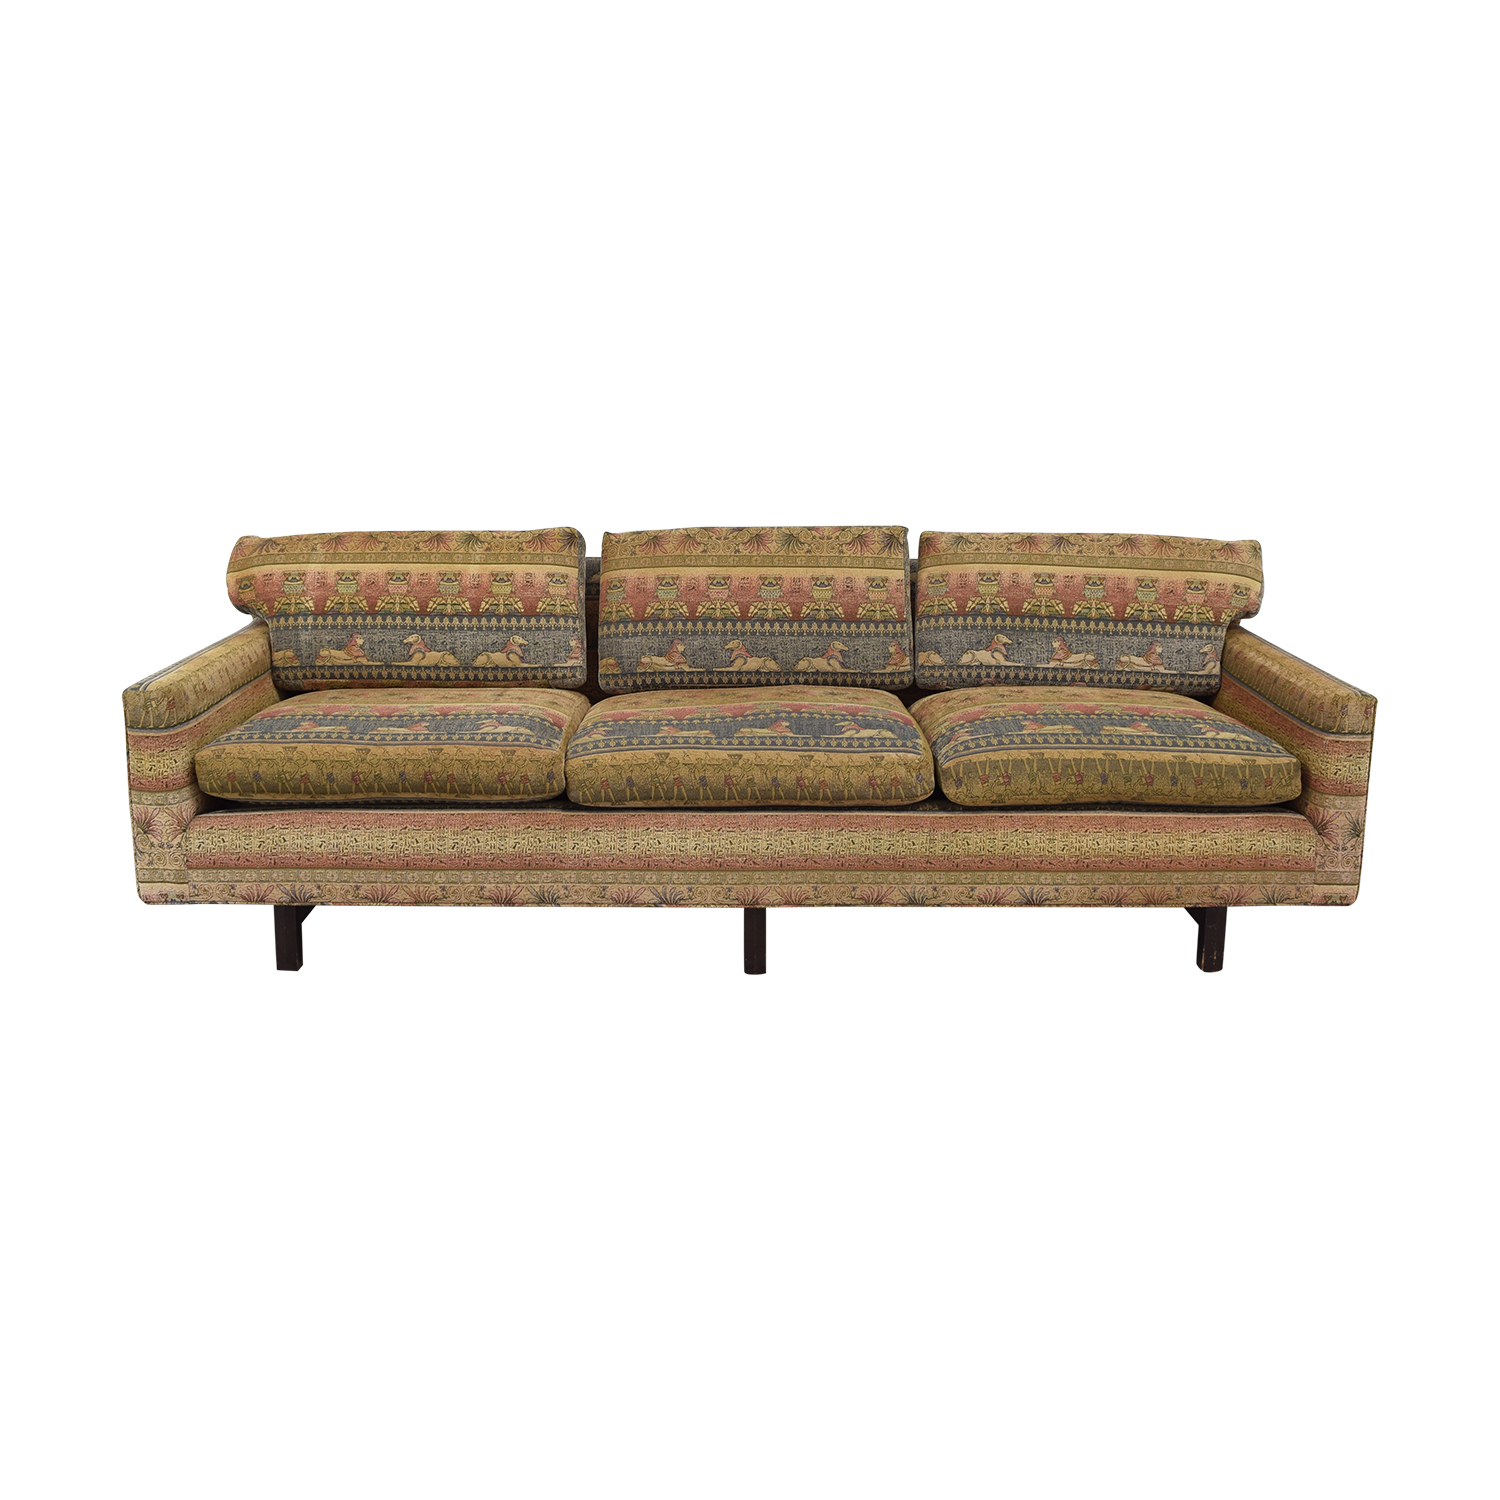 Vintage Three-Cushion Multi-Colored Couch on sale